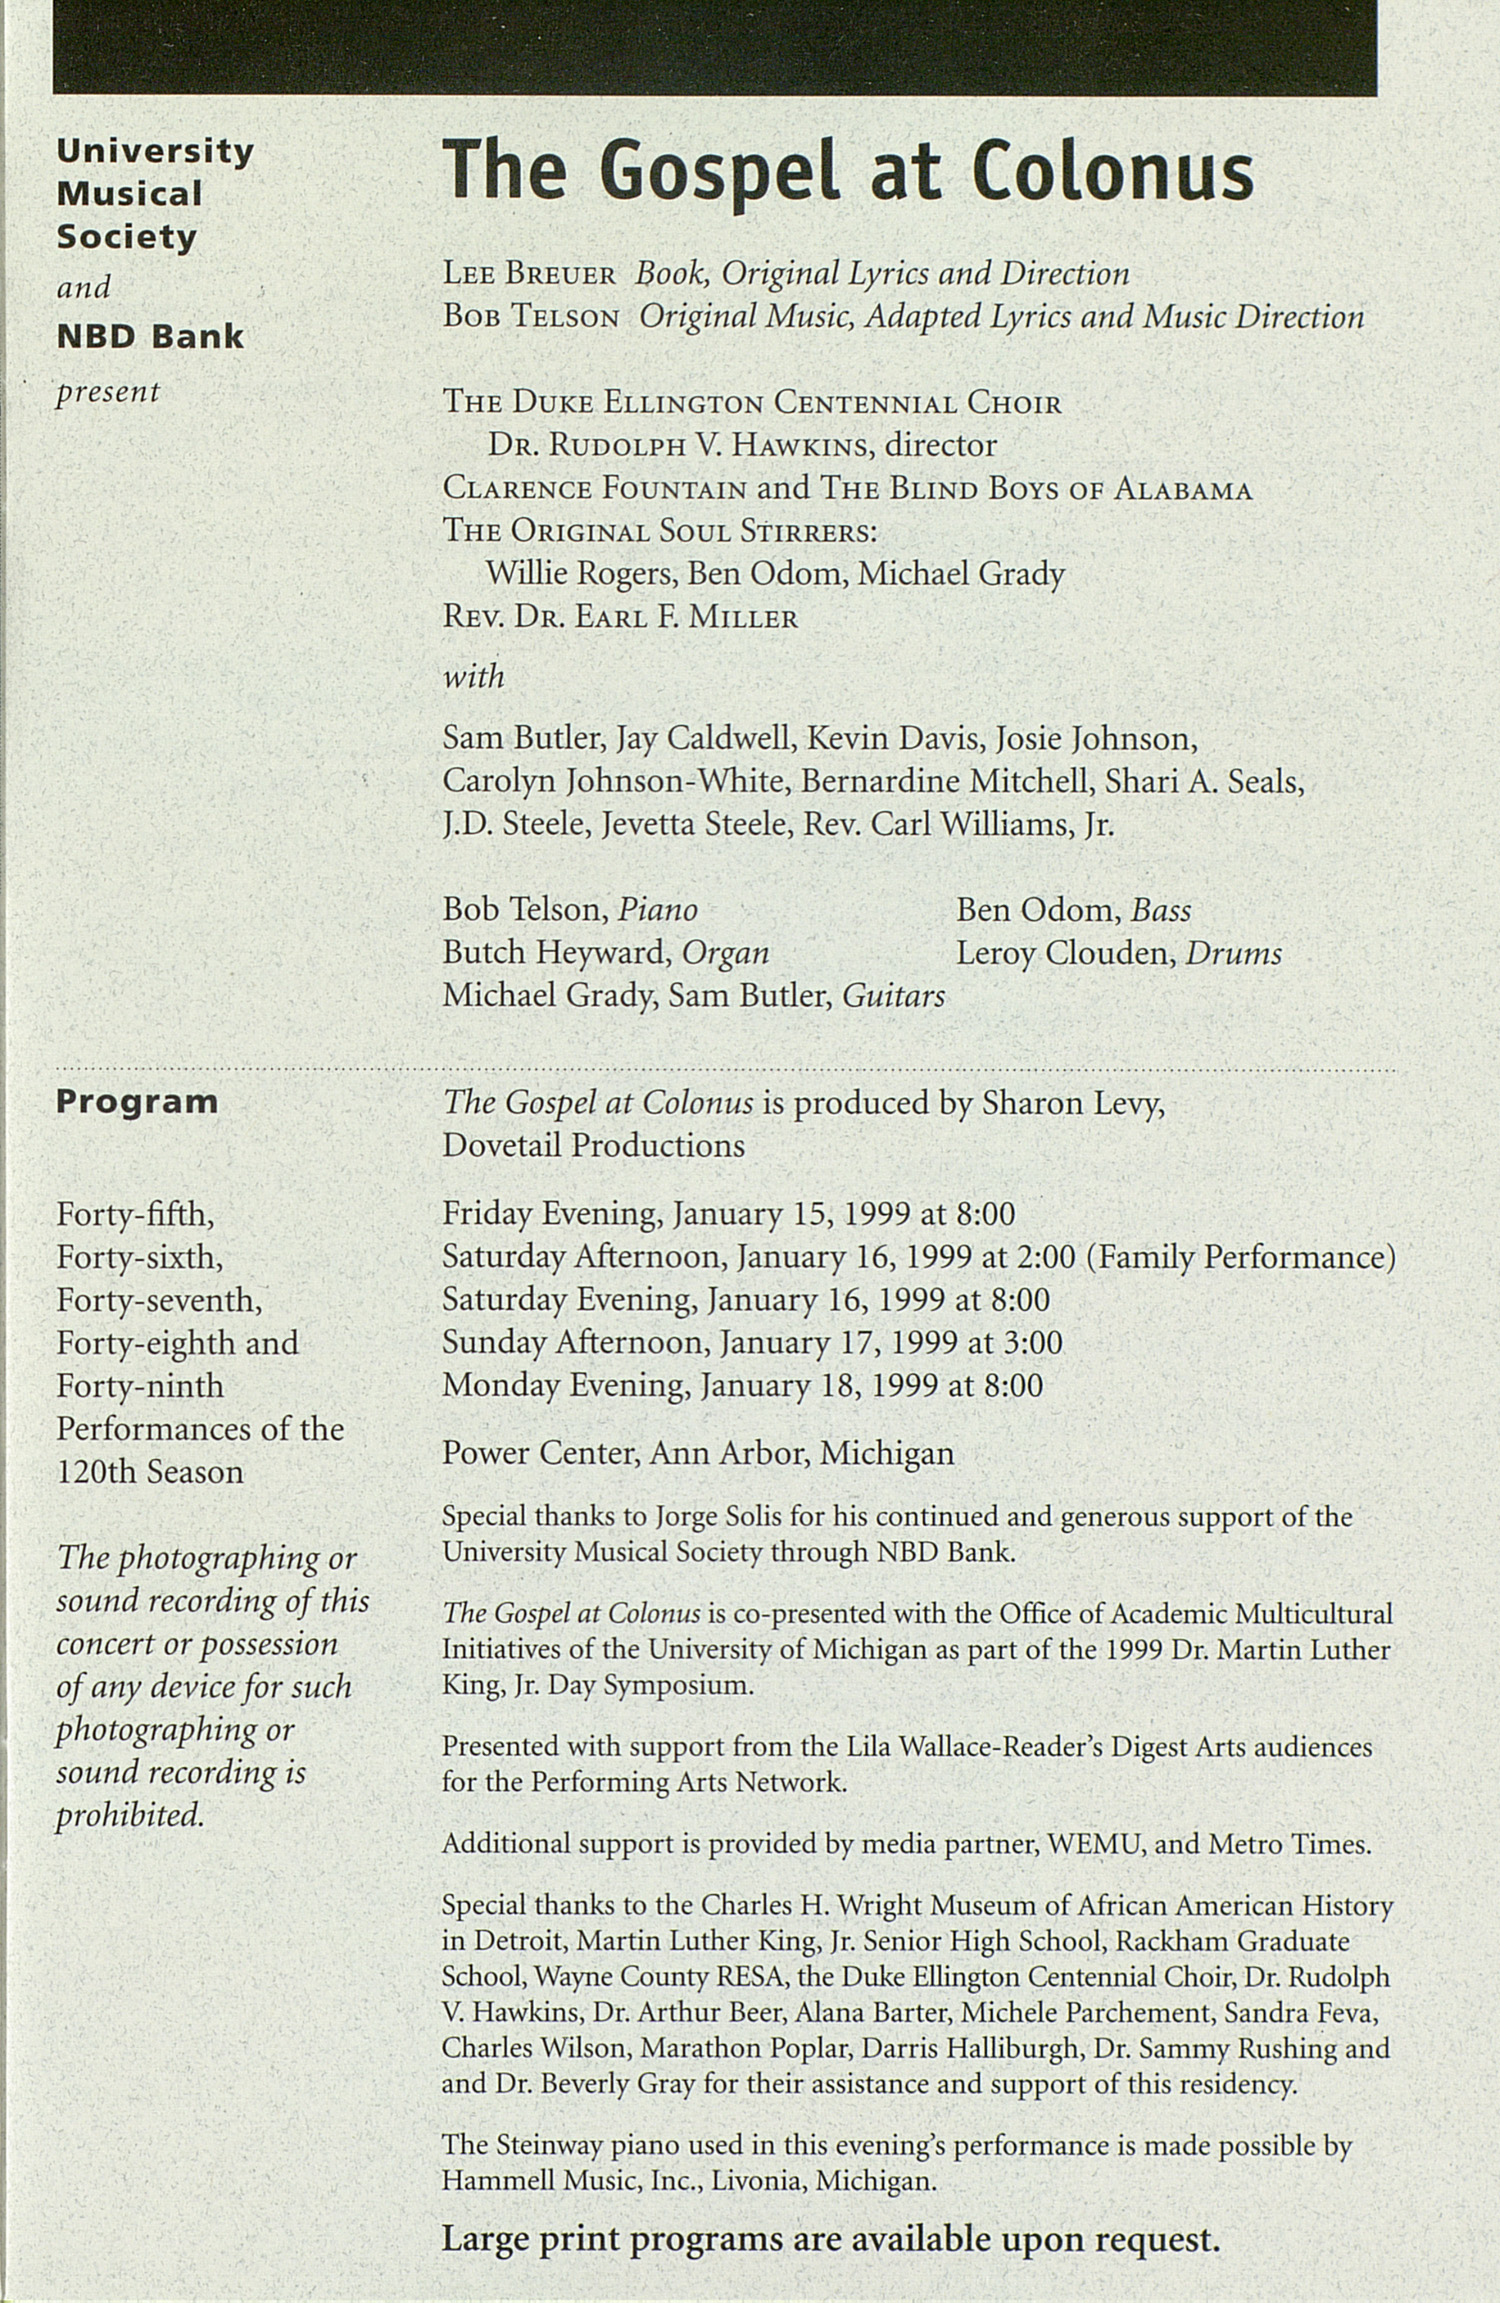 UMS Concert Program, Thursday Jan. 14 To 28: University Musical Society: 1998-1999 Winter - Thursday Jan. 14 To 28 --  image